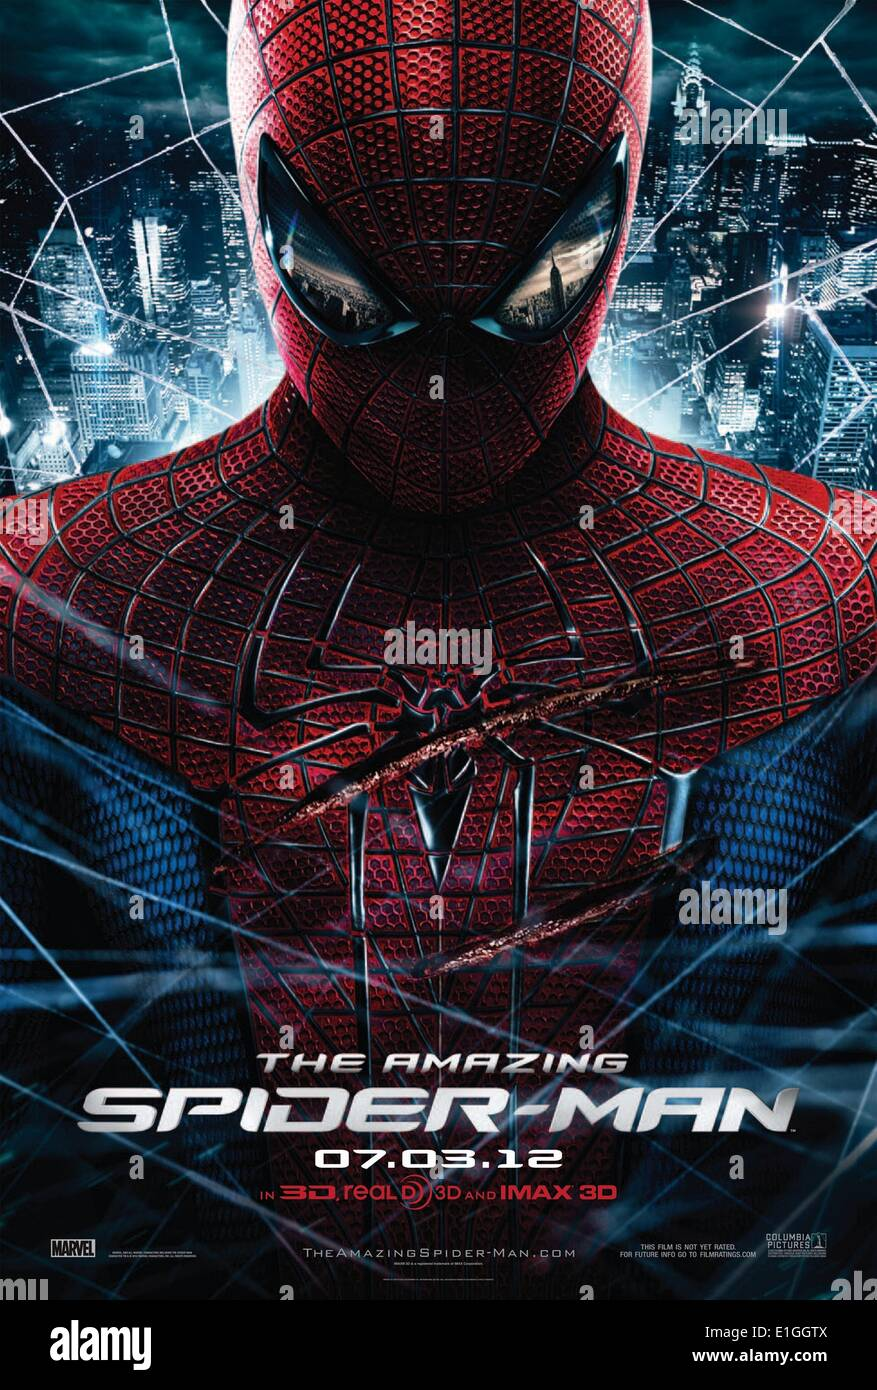 'The Amazing Spider-Man' action/drama film made in 2012 stars Andrew Garfield, Emma Stone and Rhys Ifans. - Stock Image